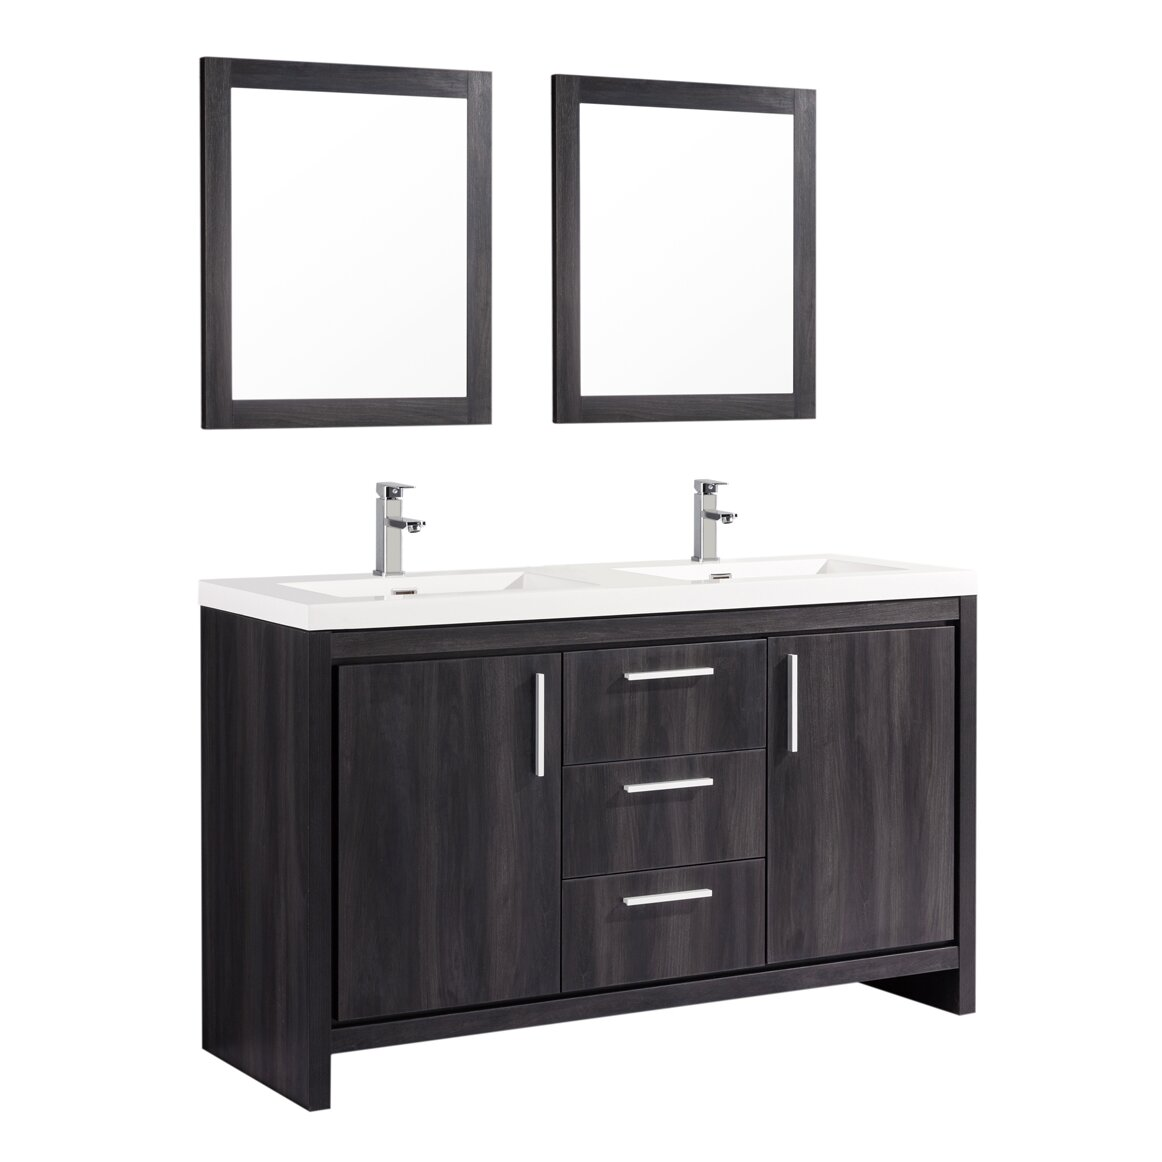 Mtdvanities miami 59 double sink modern bathroom vanity set with mirror wayfair - Modern bathroom vanity double sink ...